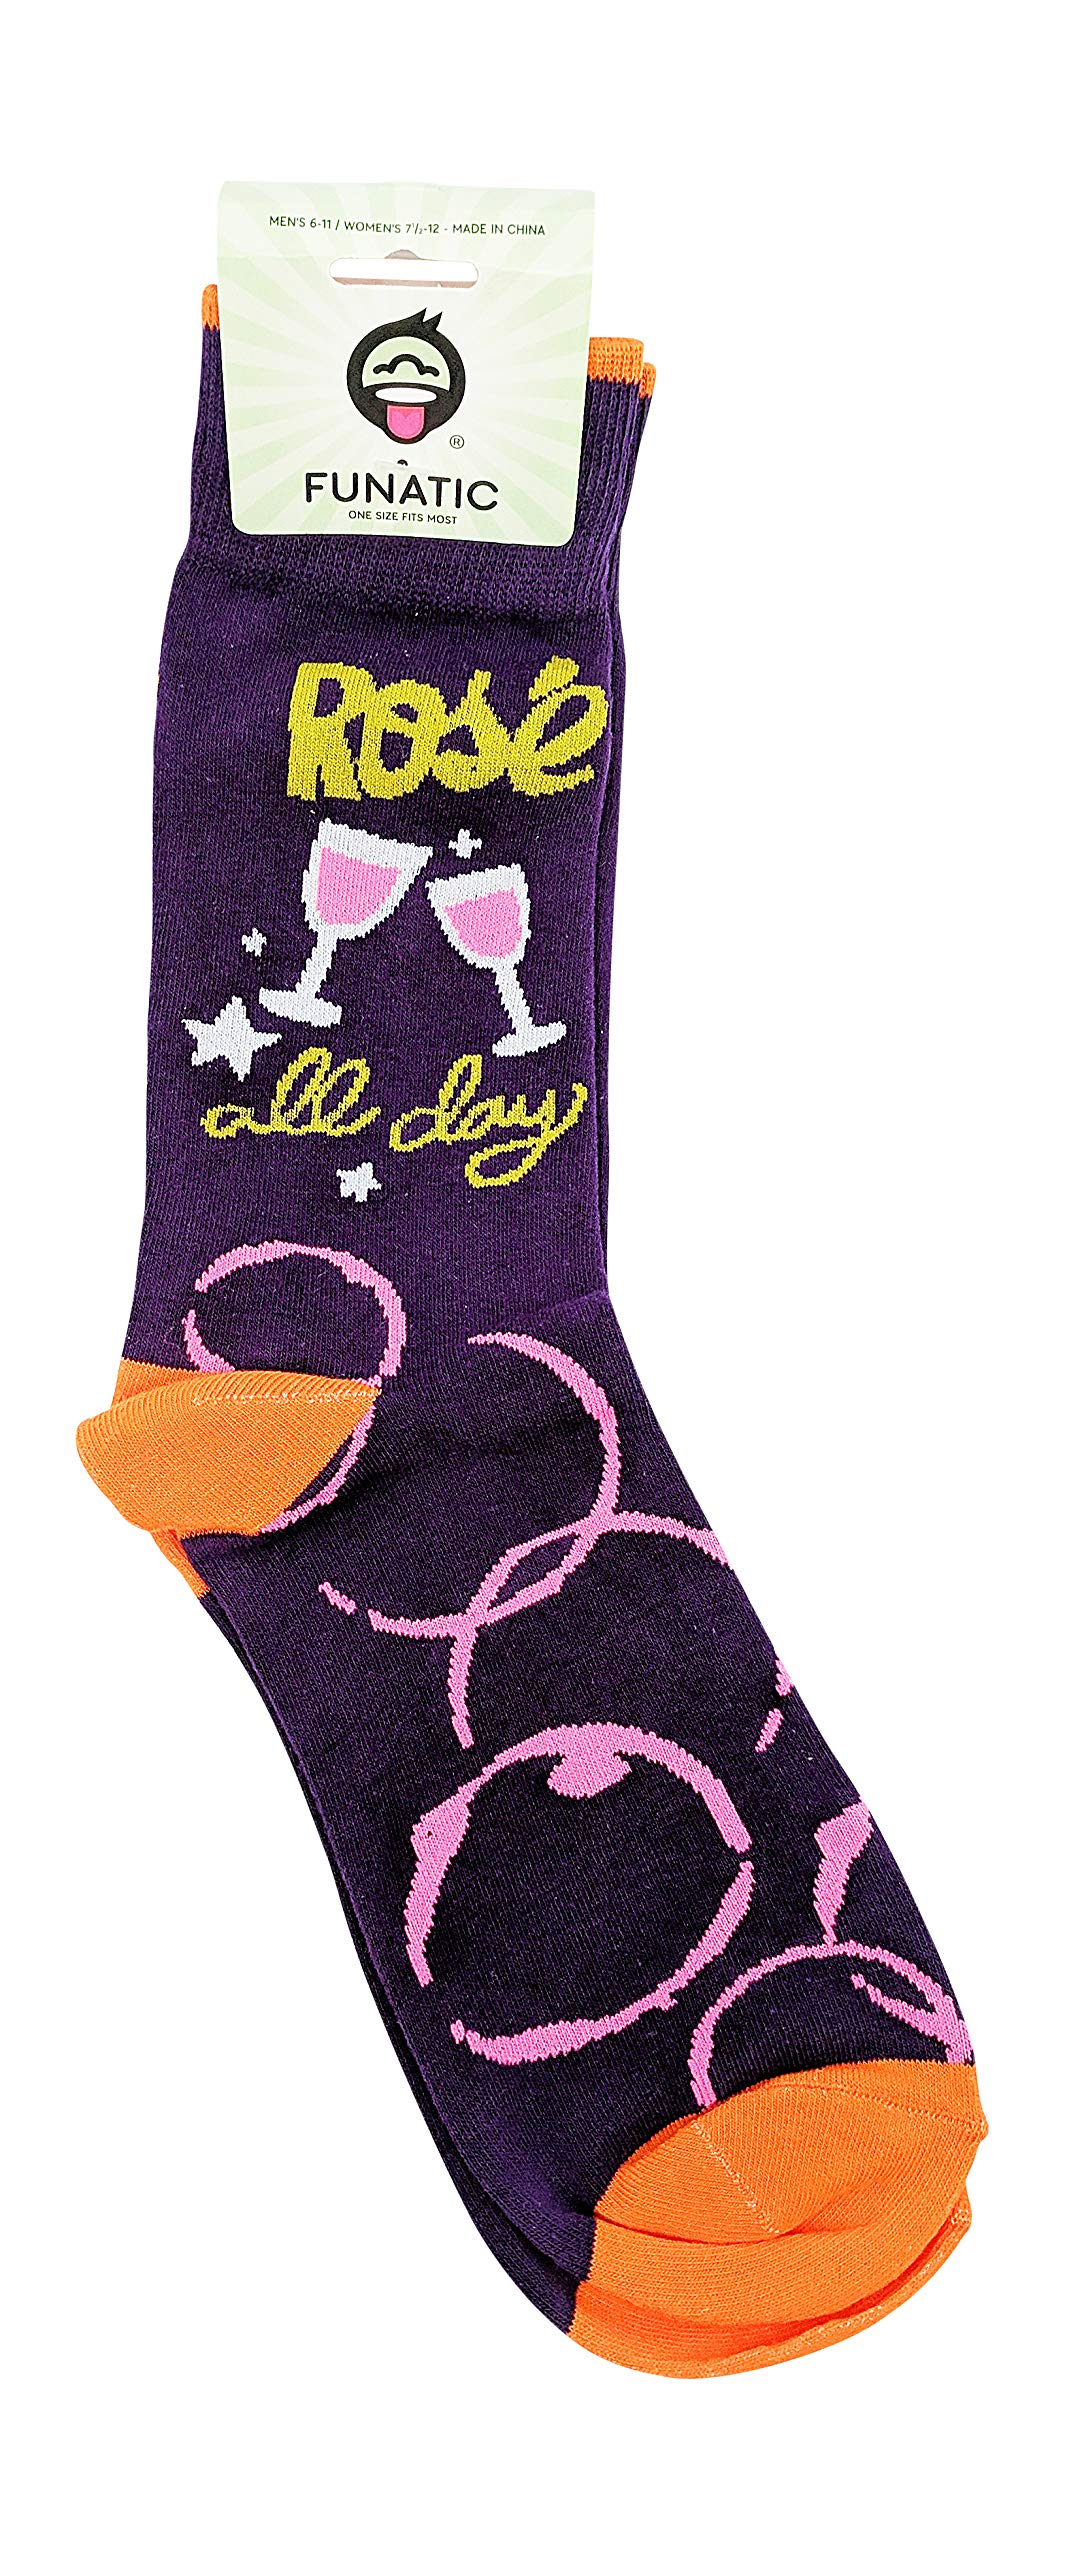 Rosé All Day - Womens Socks - Personalized Gifts - Funny Gifts For Women - Novelty Socks Women - Funky Socks - Fun Socks - Funny Socks Women - Womens Funny Socks - Funny Socks For Women - FUNATIC